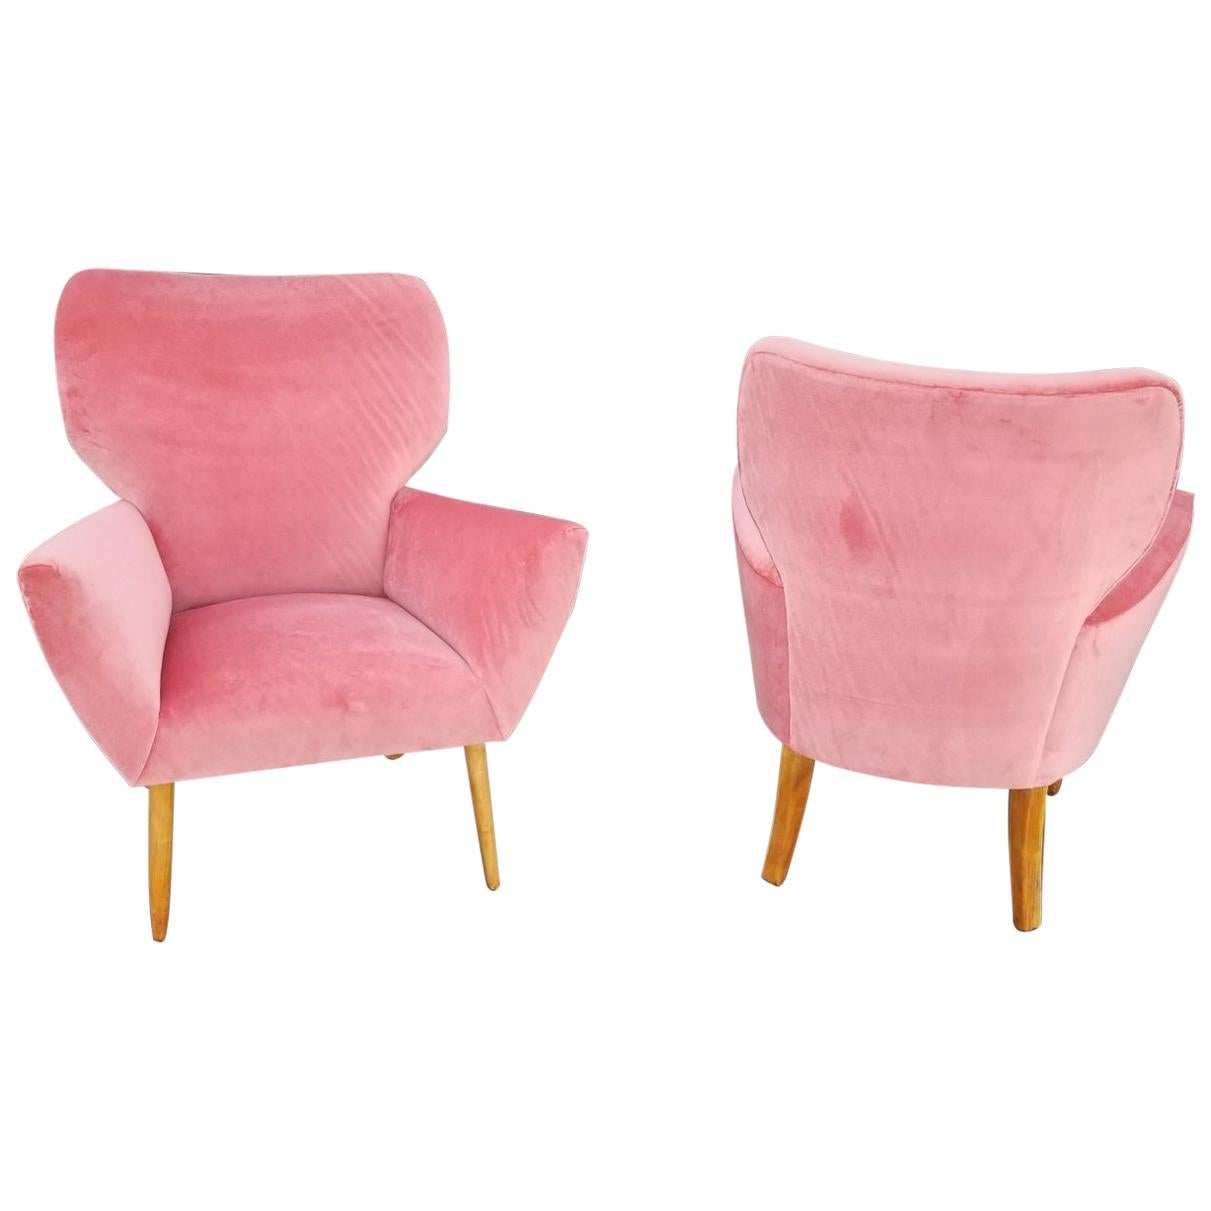 Midcentury Italian Wing-Shaped Side Chairs